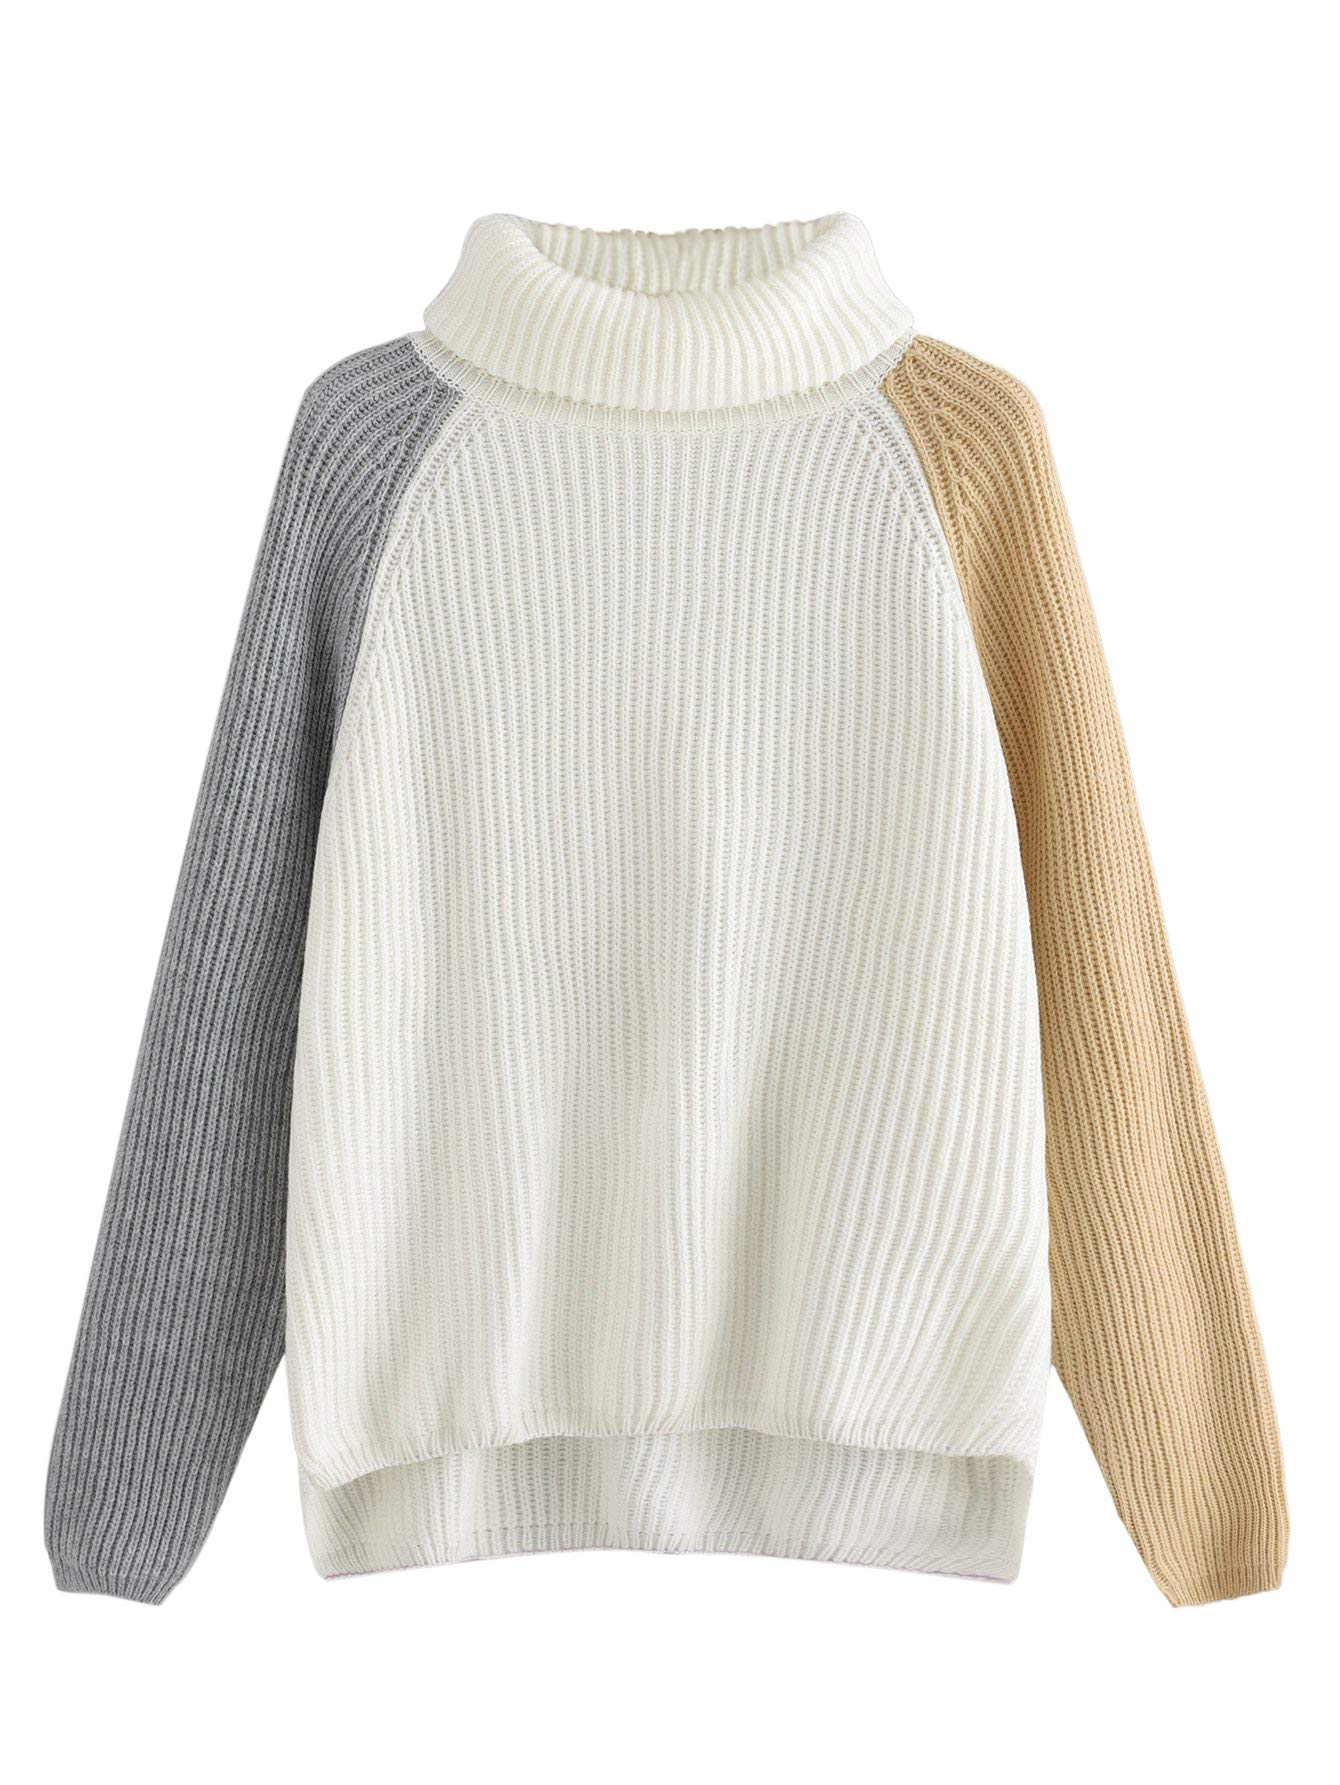 afa300596764a4 Milumia Comfy Sweaters,Women Dip Hem Letter Print Loose Oversized Pullover  Sweater Knit Jumper White